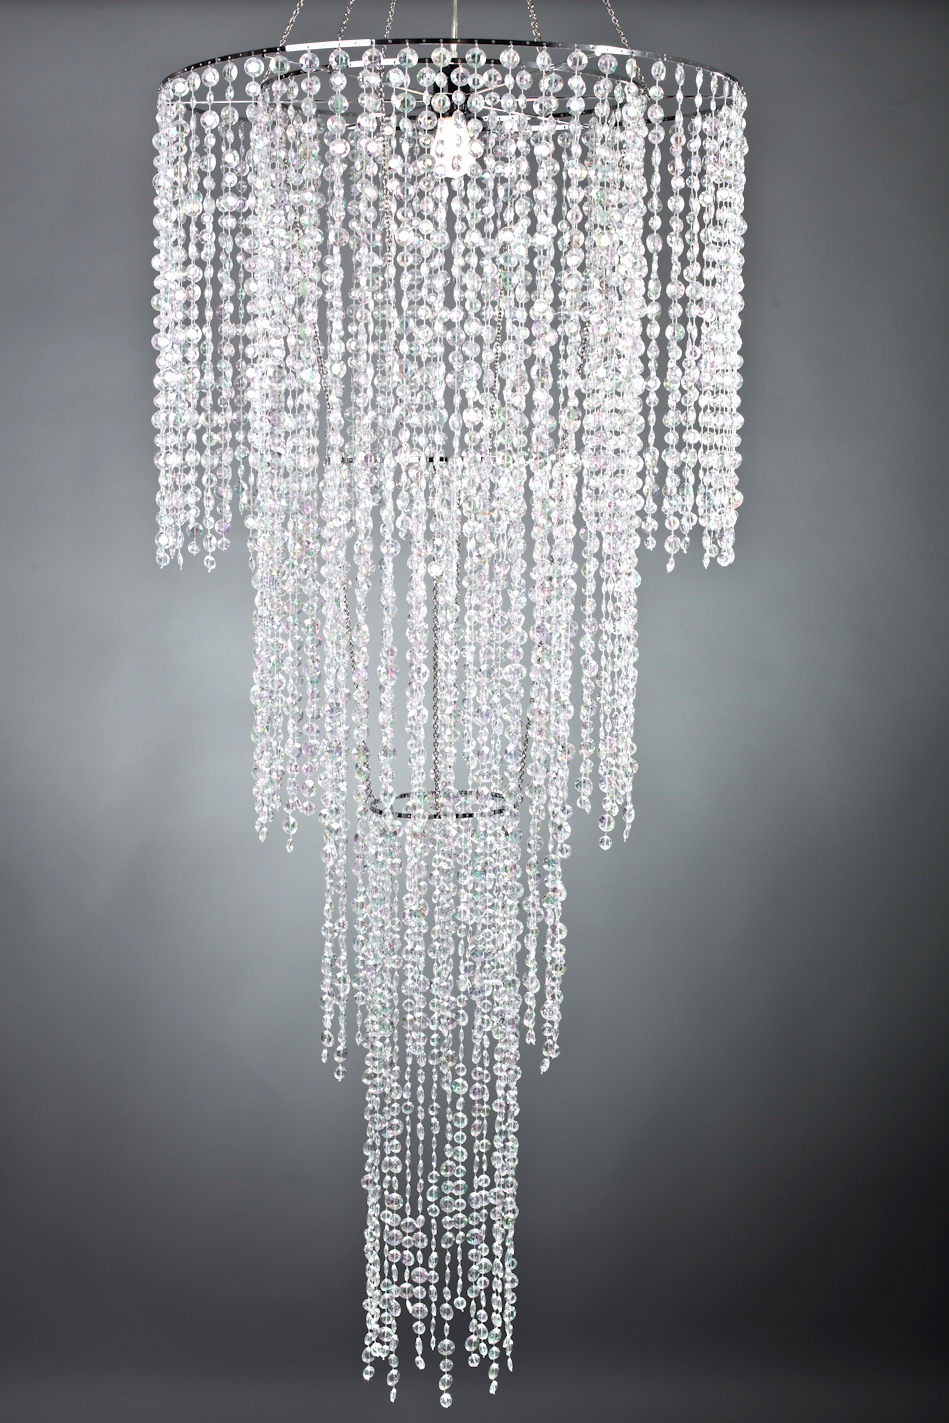 Large 4 Tier Crystal Acrylic Chandelier Tent Lighting And Chandeliers